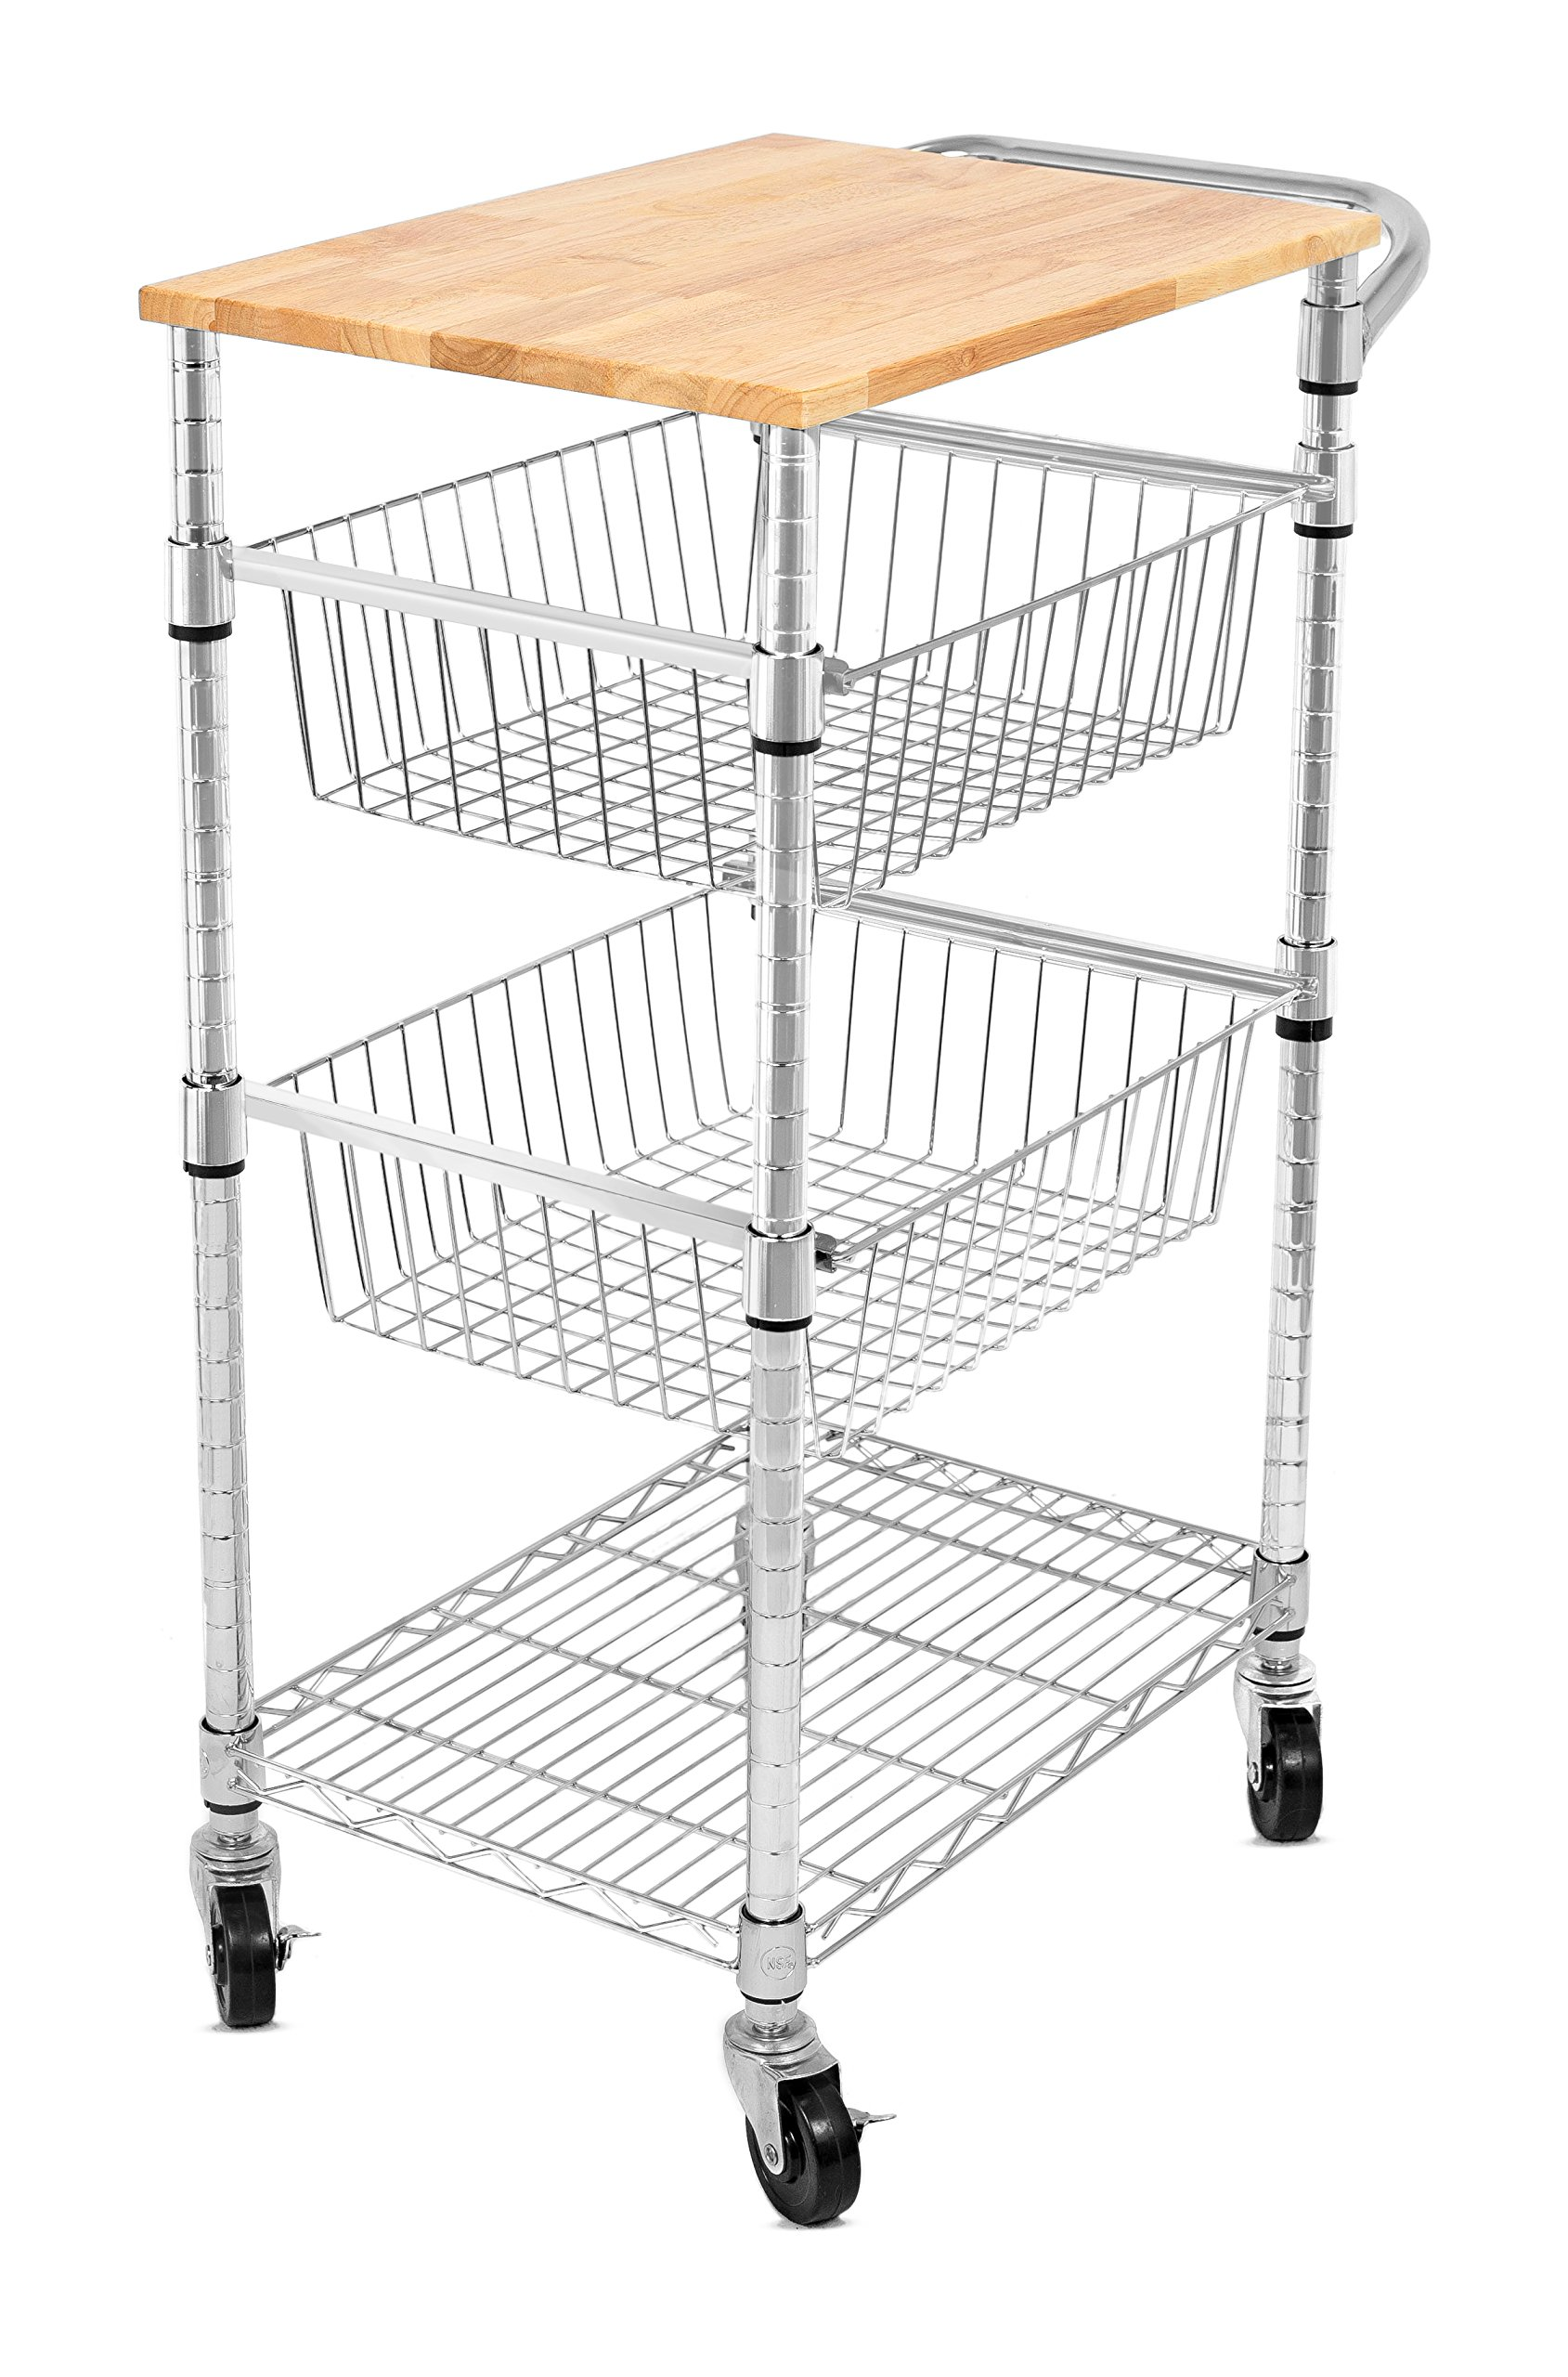 Internet's Best 3-Tier Kitchen Cart with Wire Baskets - Kitchen Island Trolley with Locking Wheels - Removable Cutting Board - 2 Sliding Wire Baskets for Cooking Utensils or Food Storage by Internet's Best